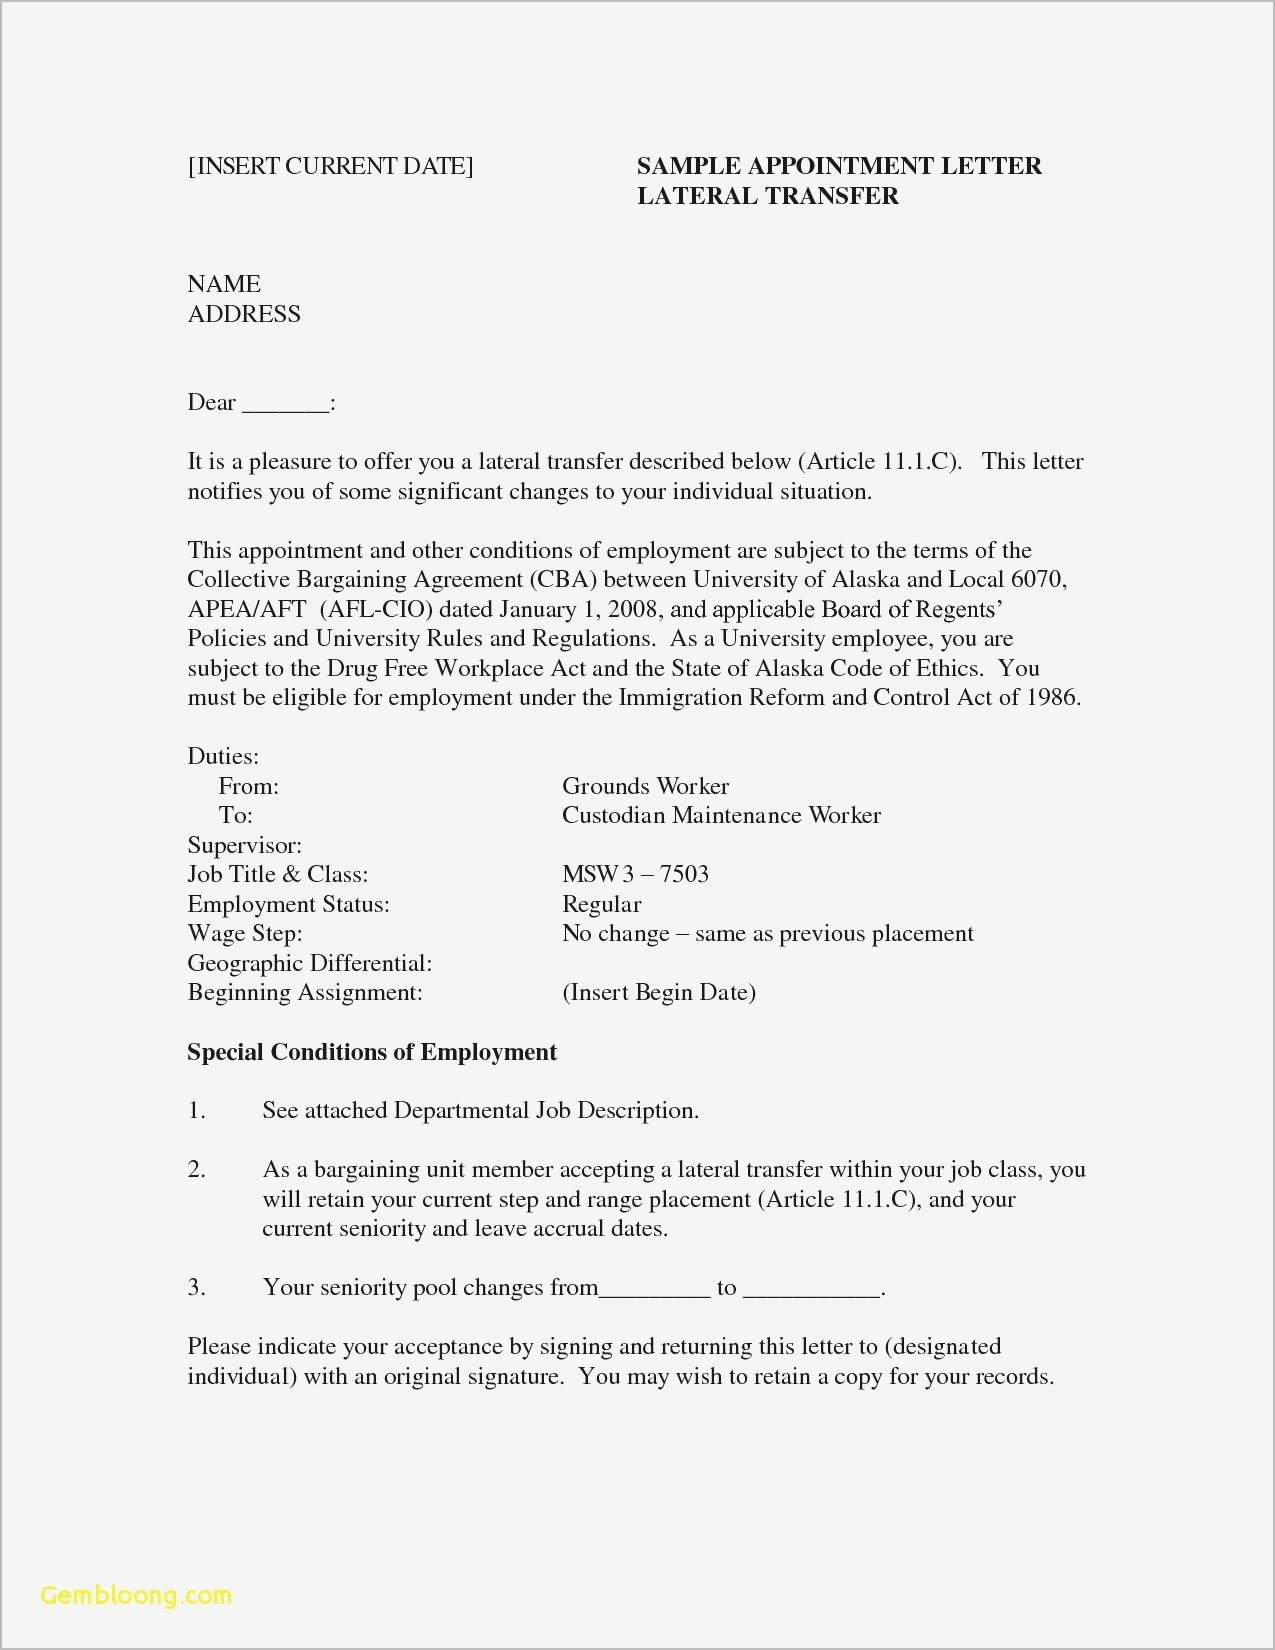 chronological format resume template Collection-Sample Chronological Resume Format Free Downloads Best Actor Resume Unique Actor Resumes 0d Acting Resume Format 4-o